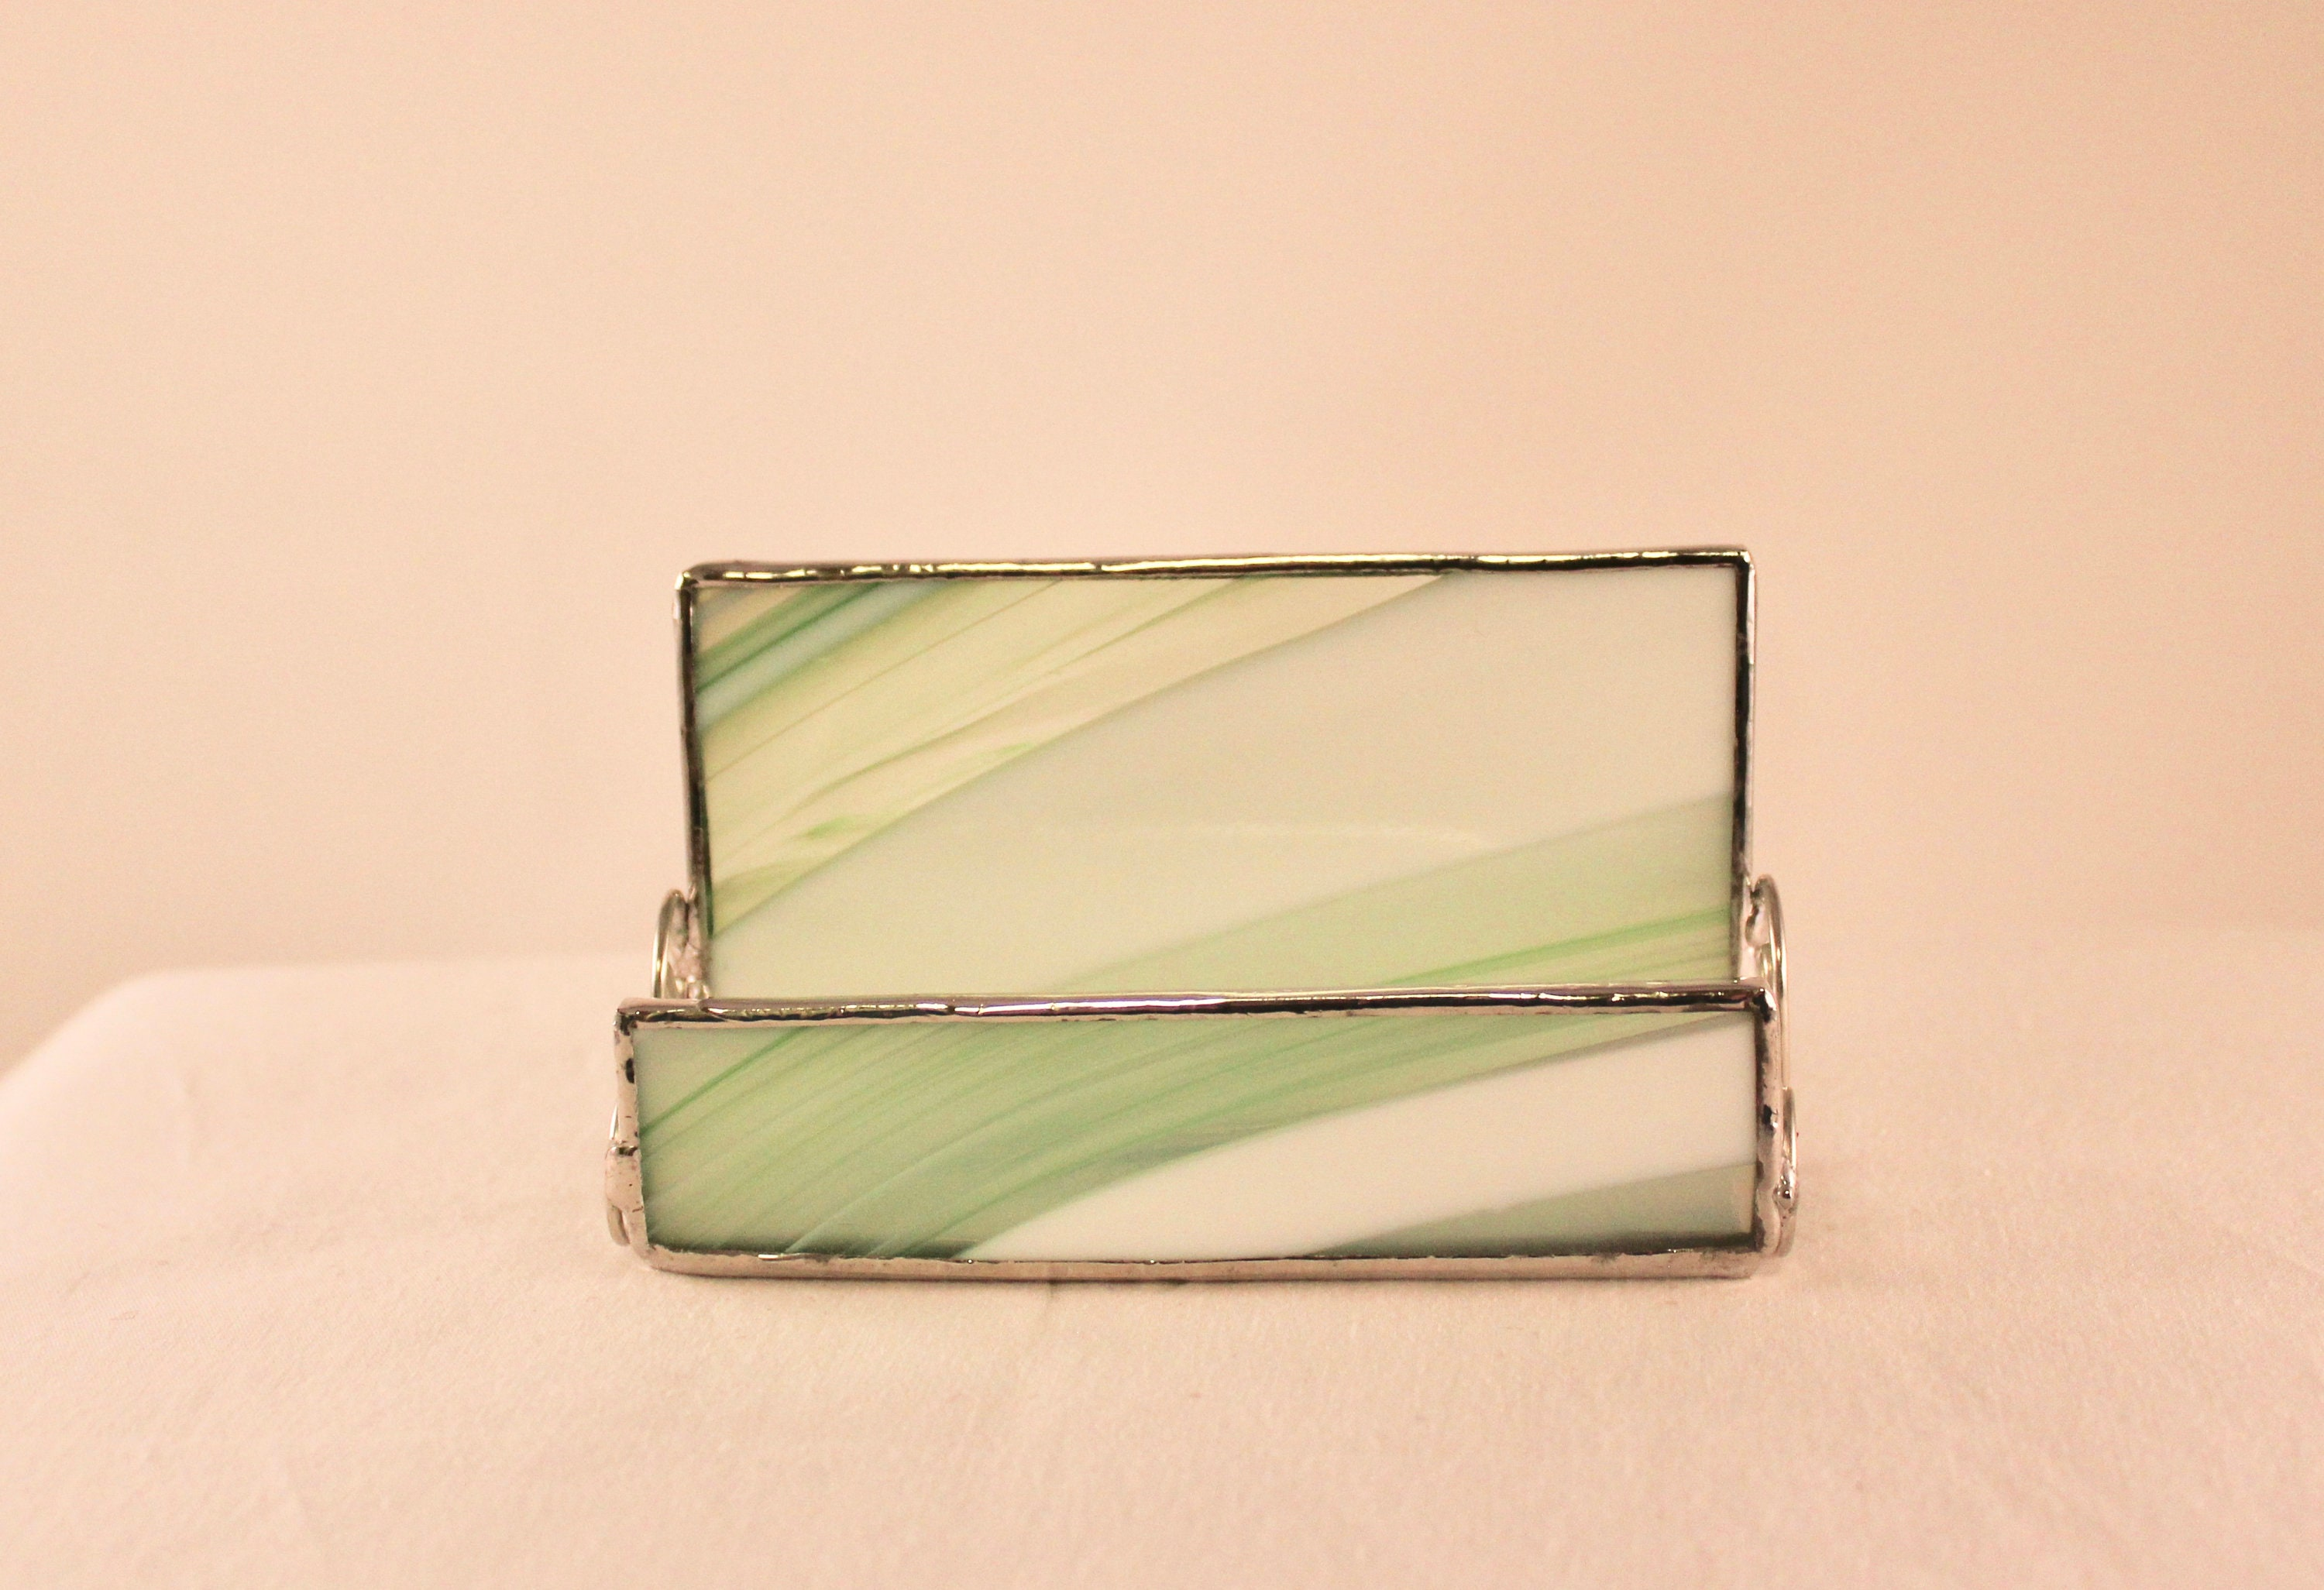 Stained glass business card holder business card holder office stained glass business card holder business card holder office decor green business card holder desk accessory reheart Gallery